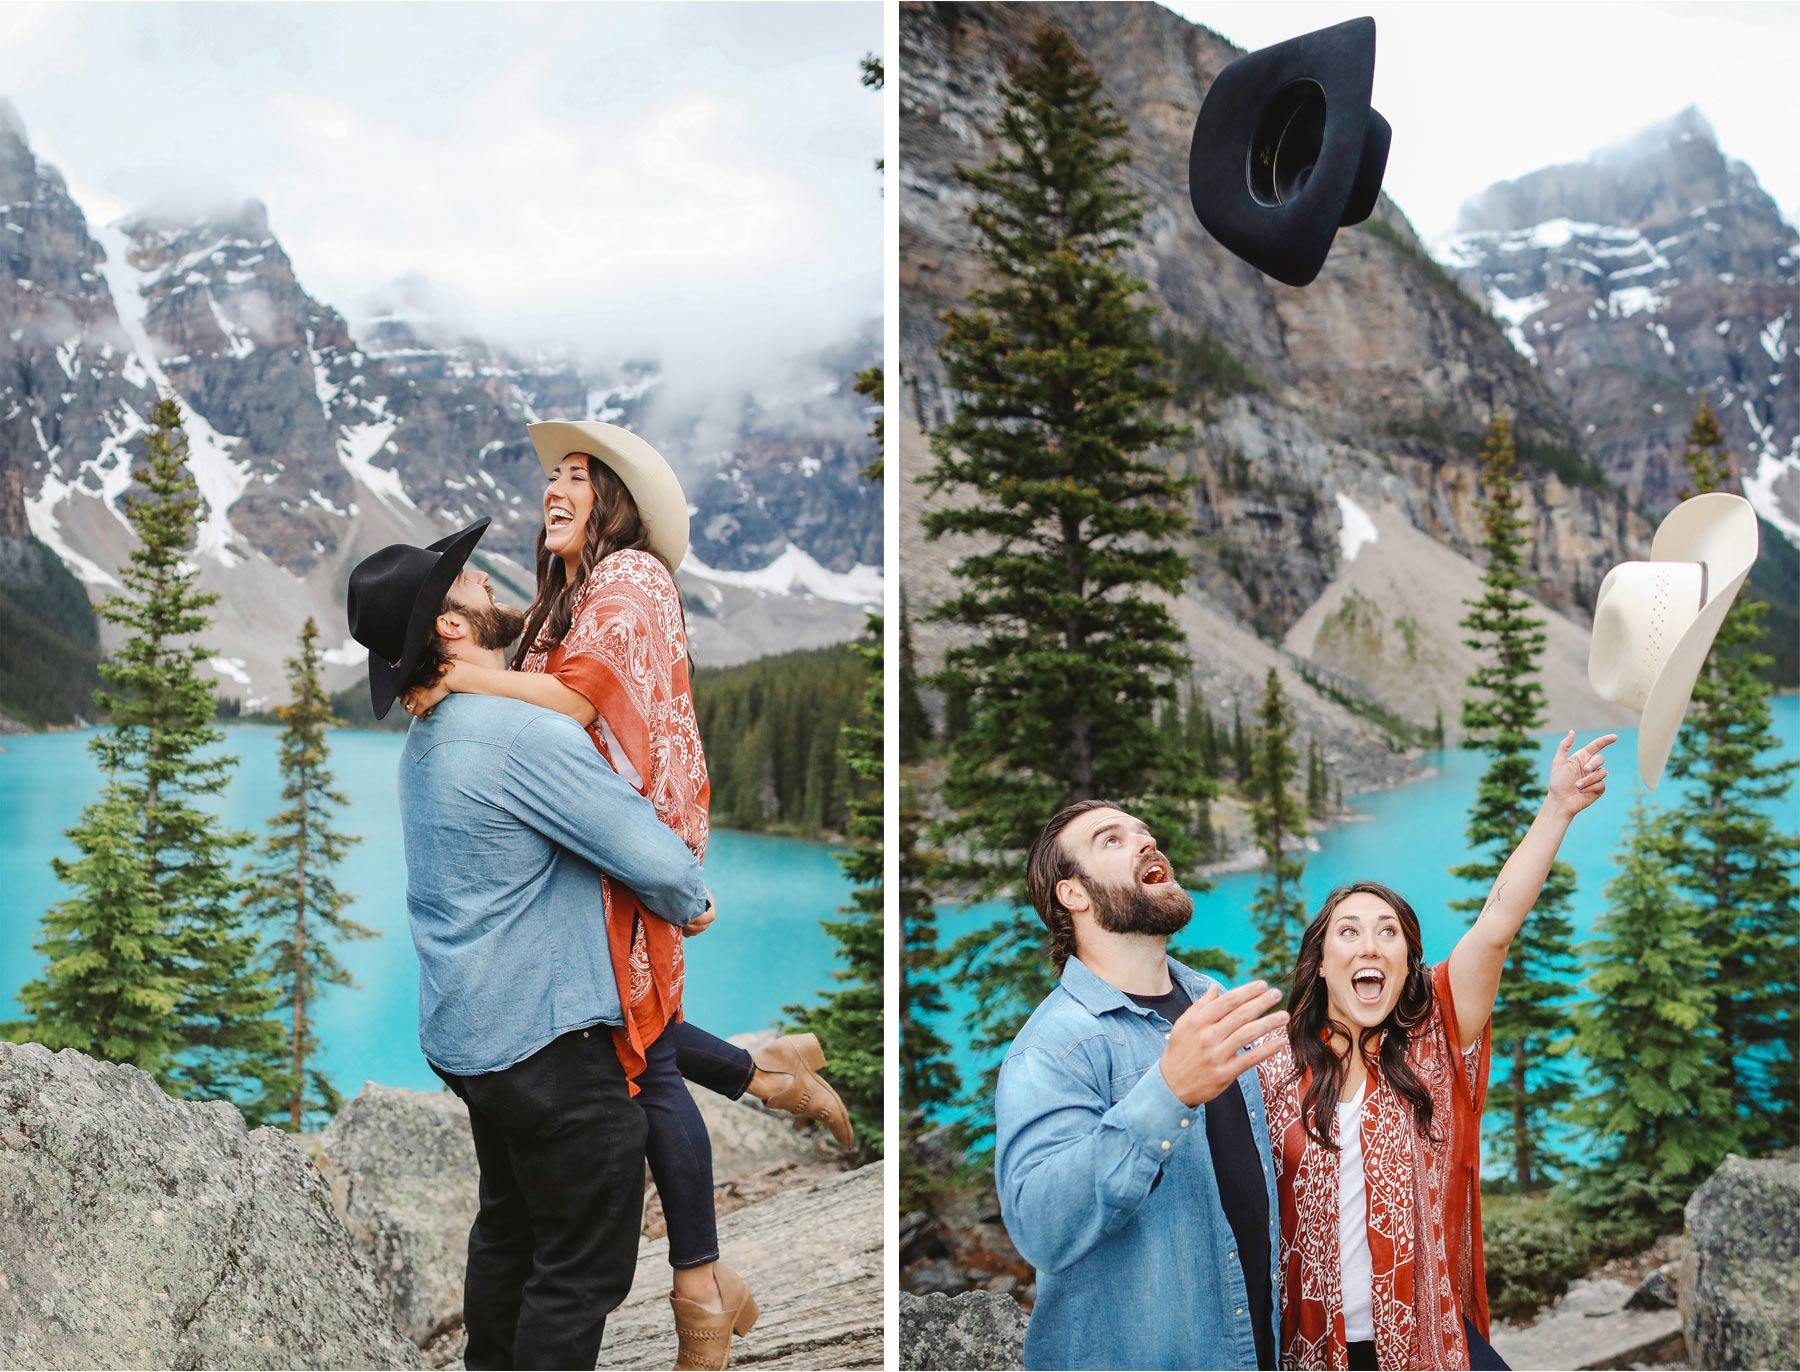 09-Banff-Canada-Engagement-Photography-by-Vick-Photography-Lake-Louise-Mountains-Cowboy-Hat-Lizz-and-Brady.jpg